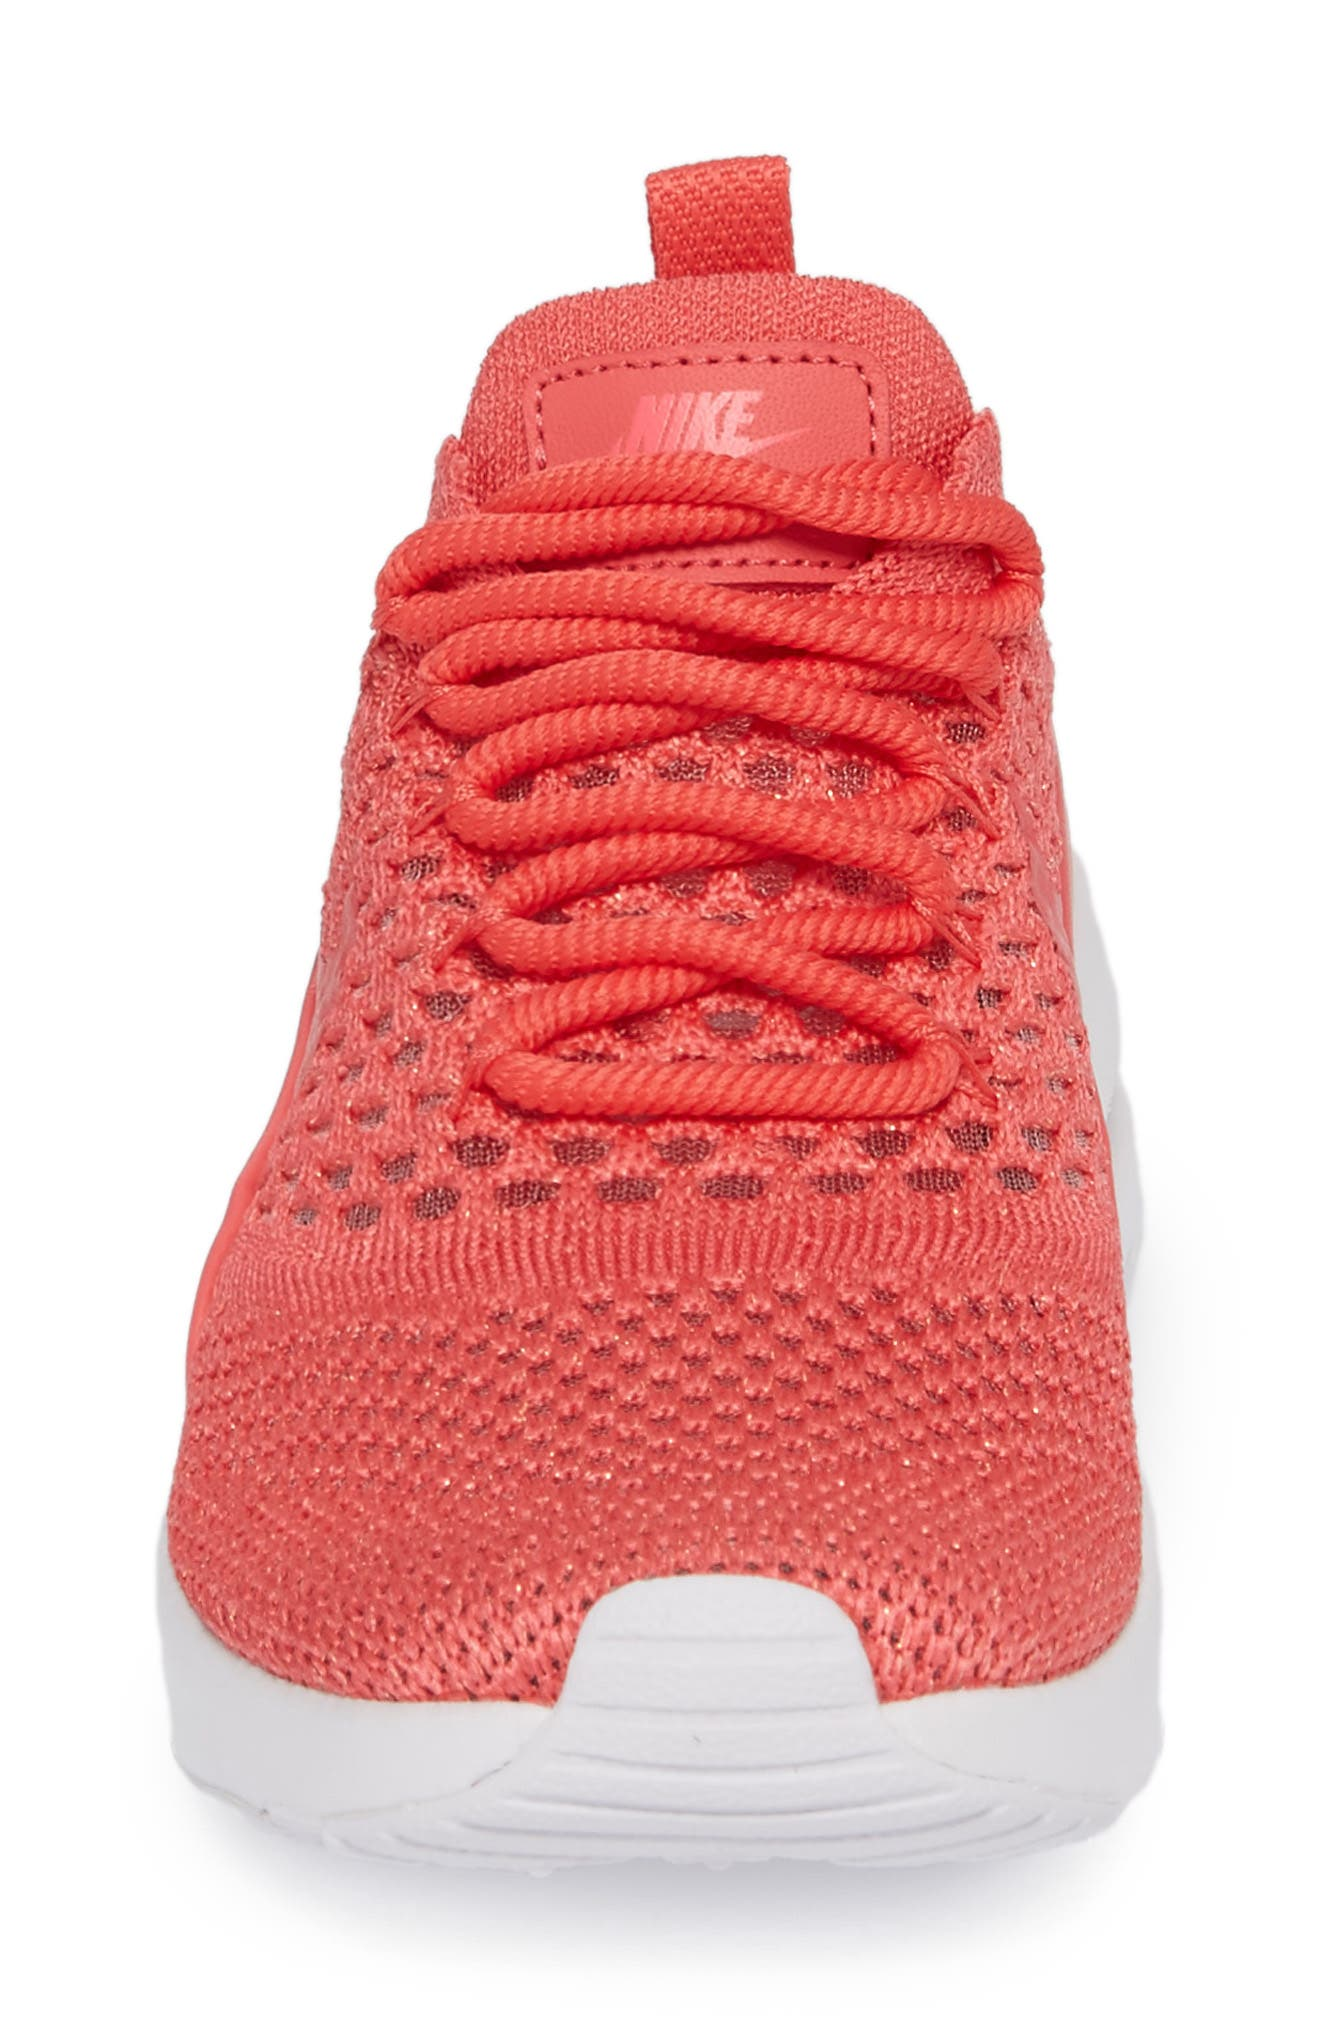 Air Max Thea Ultra Flyknit Sneaker,                             Alternate thumbnail 38, color,